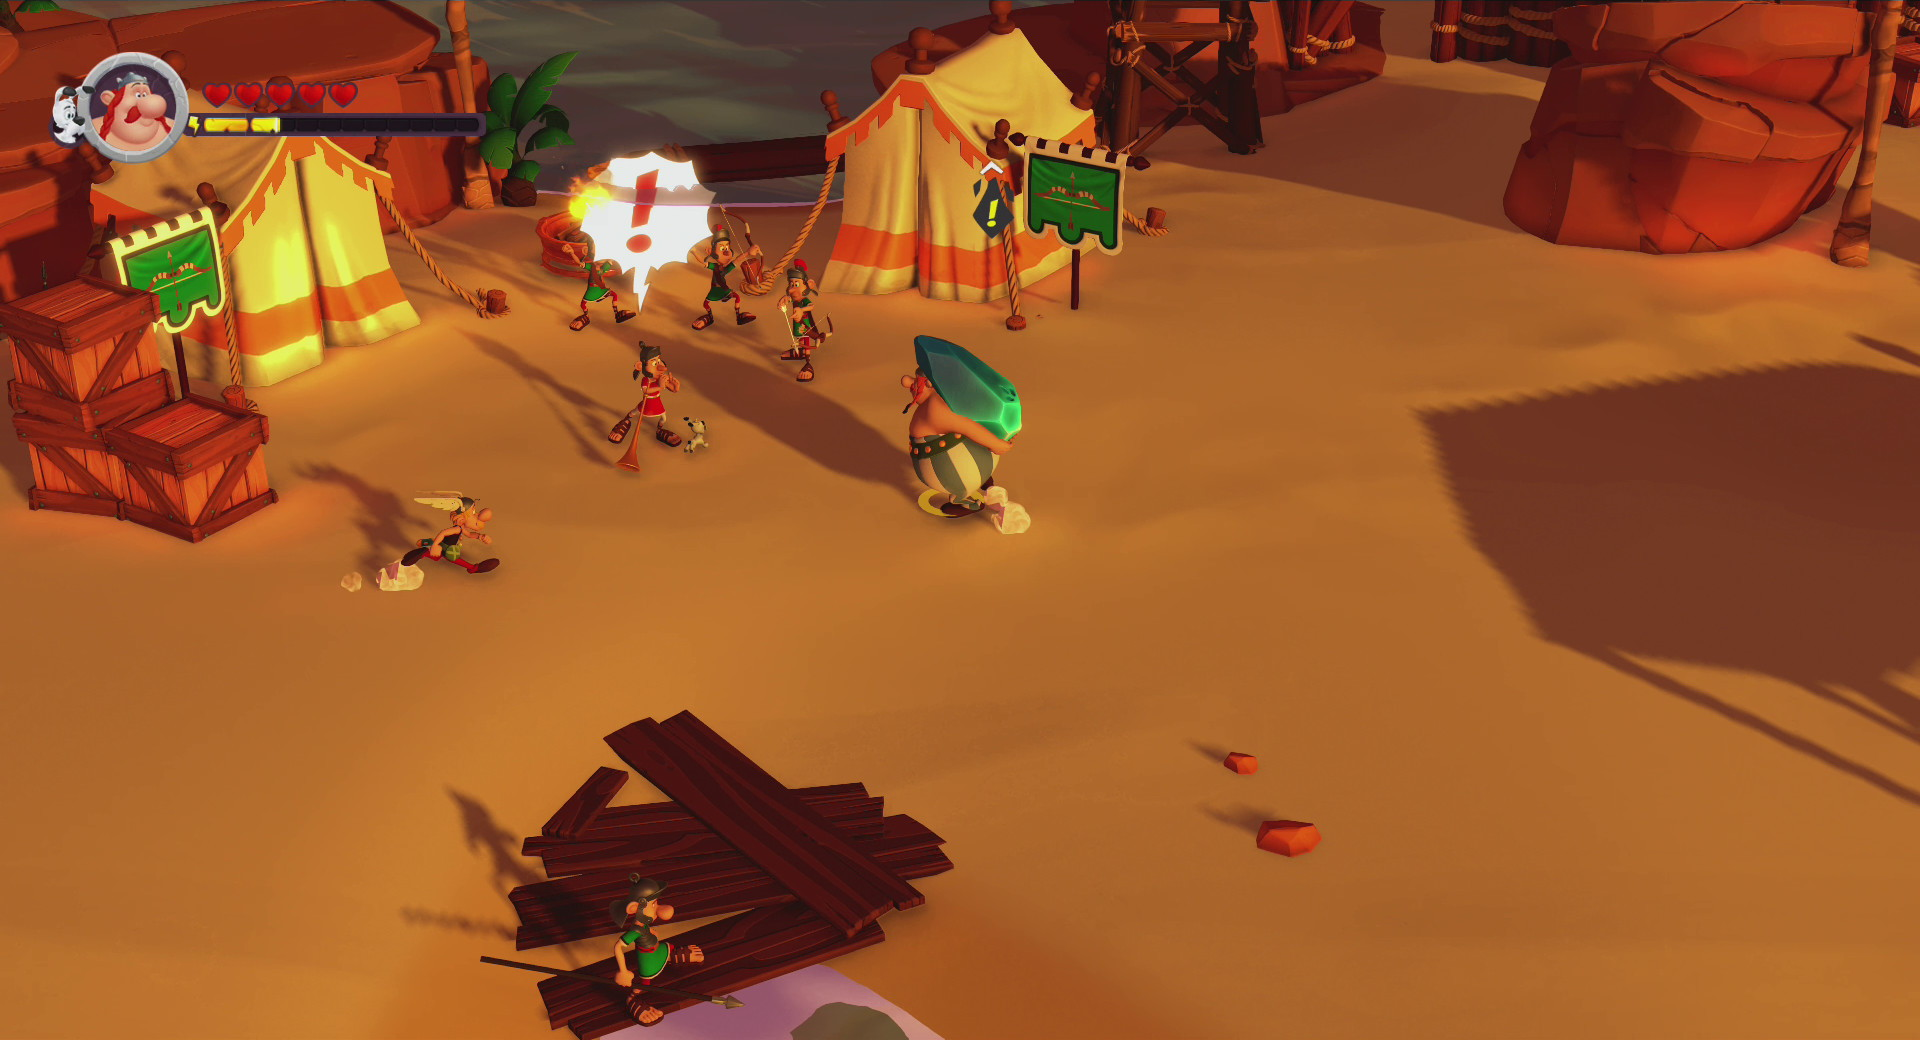 Asterix & Obelix XXL 3: The Crystal Menhir - screenshot 11